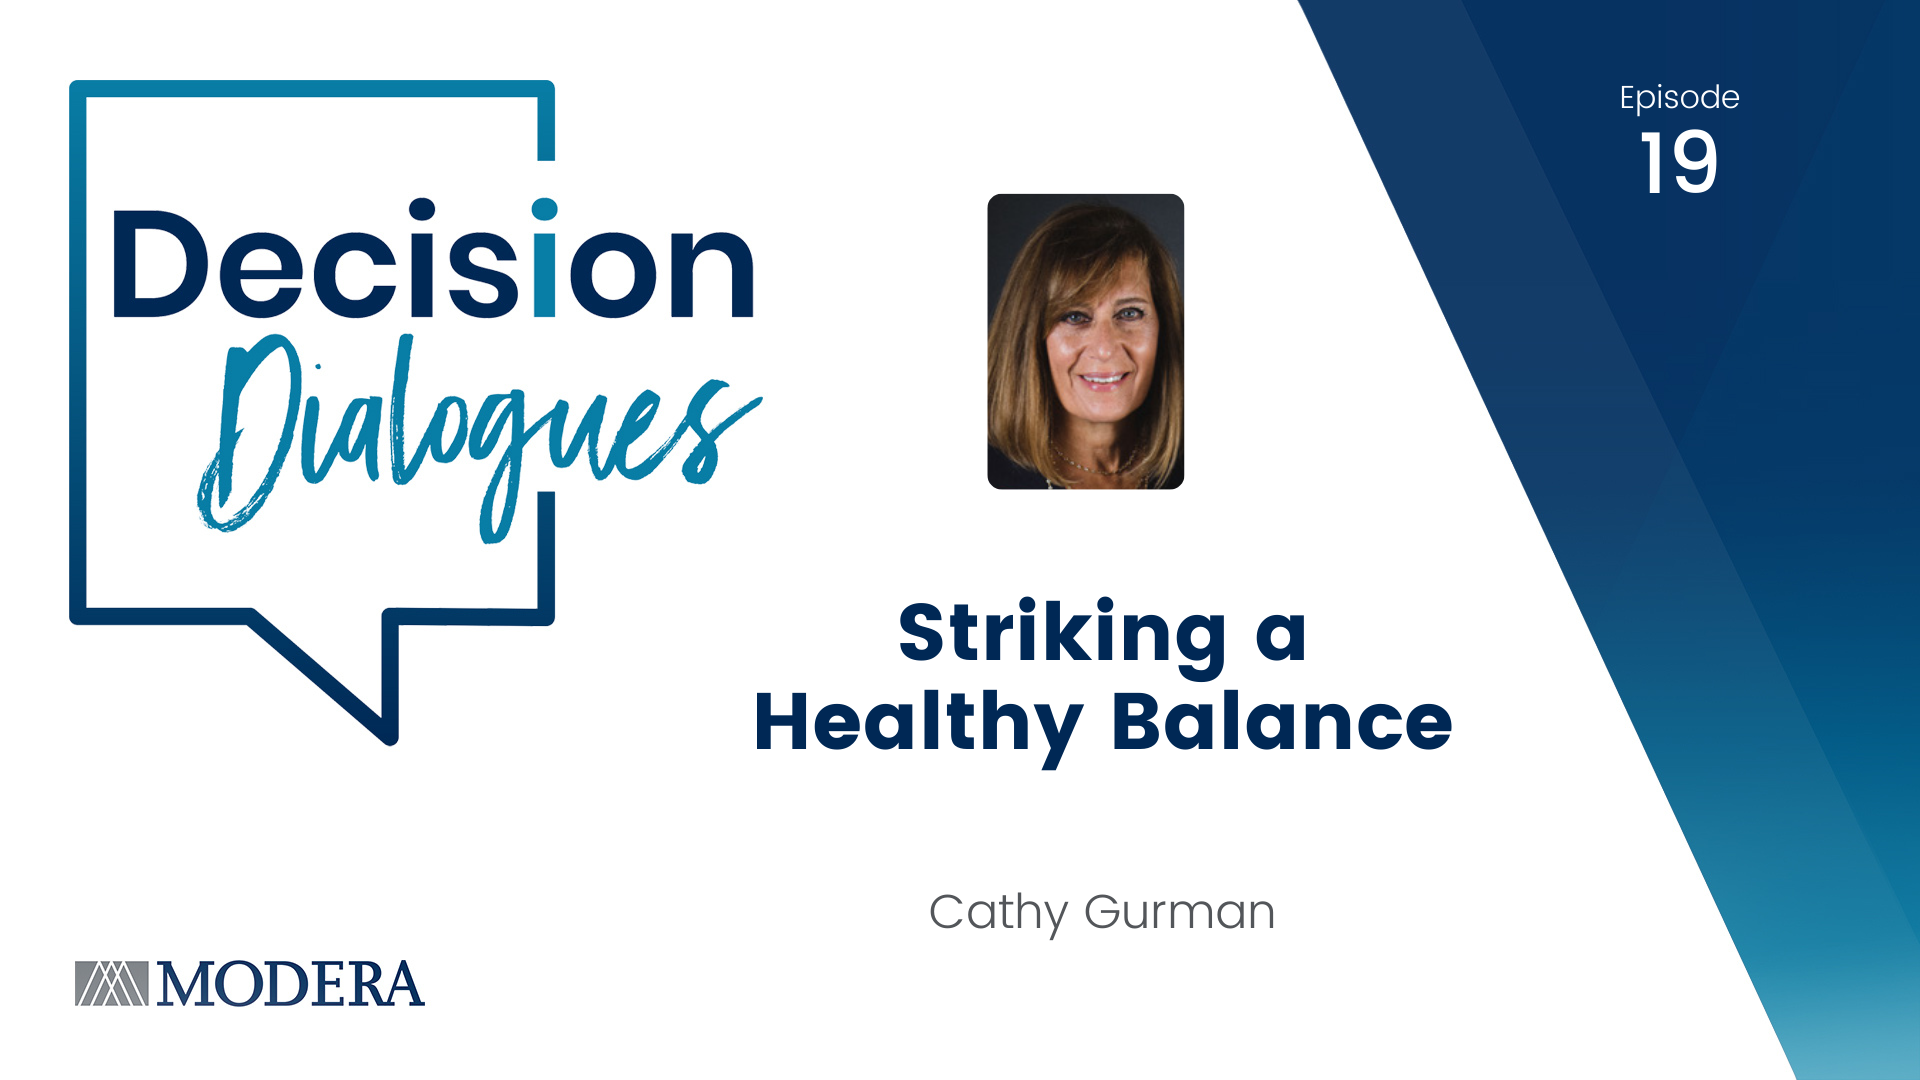 Decision Dialogues Ep 19 - Cathy Gurman